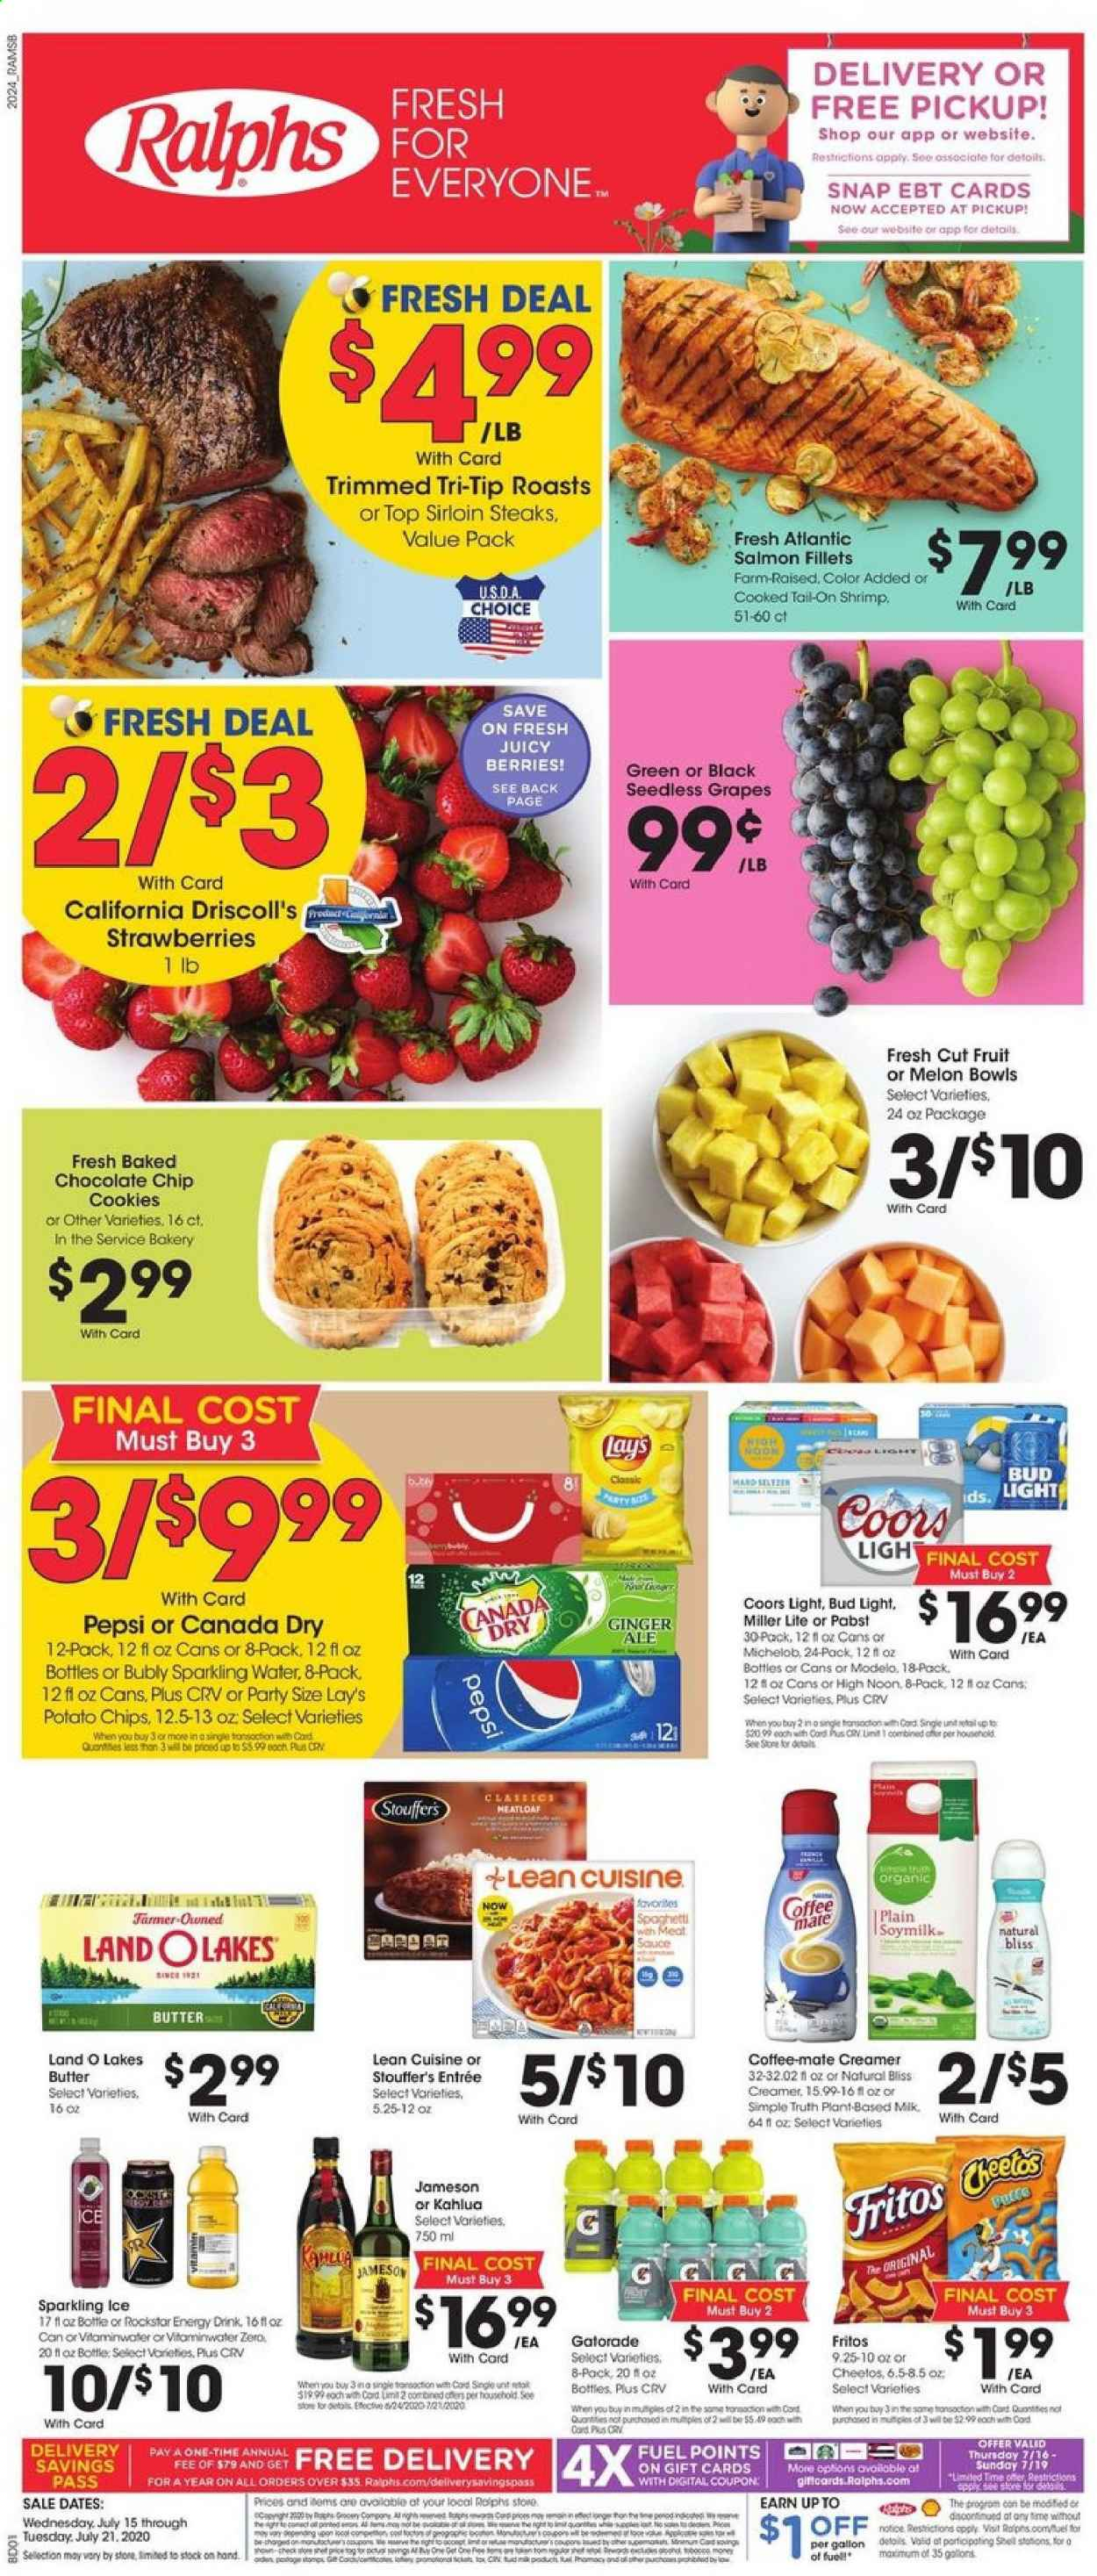 Ralphs Flyer - 07.15.2020 - 07.21.2020 - Sales products - butter, Canada Dry, cod, Coffee-Mate, cookies, Fritos, fuel, ginger, grapes, Miller Lite, salmon, seedless grapes, Shell, spaghetti, strawberries, Jameson, Kahlúa, potato chips, cheetos, Pepsi, chips, chocolate, creamer, sparkling water, energy drink, Bud Light, Lay's, sauce, Fruit, Coors, Michelob, meat, shrimps. Page 1.